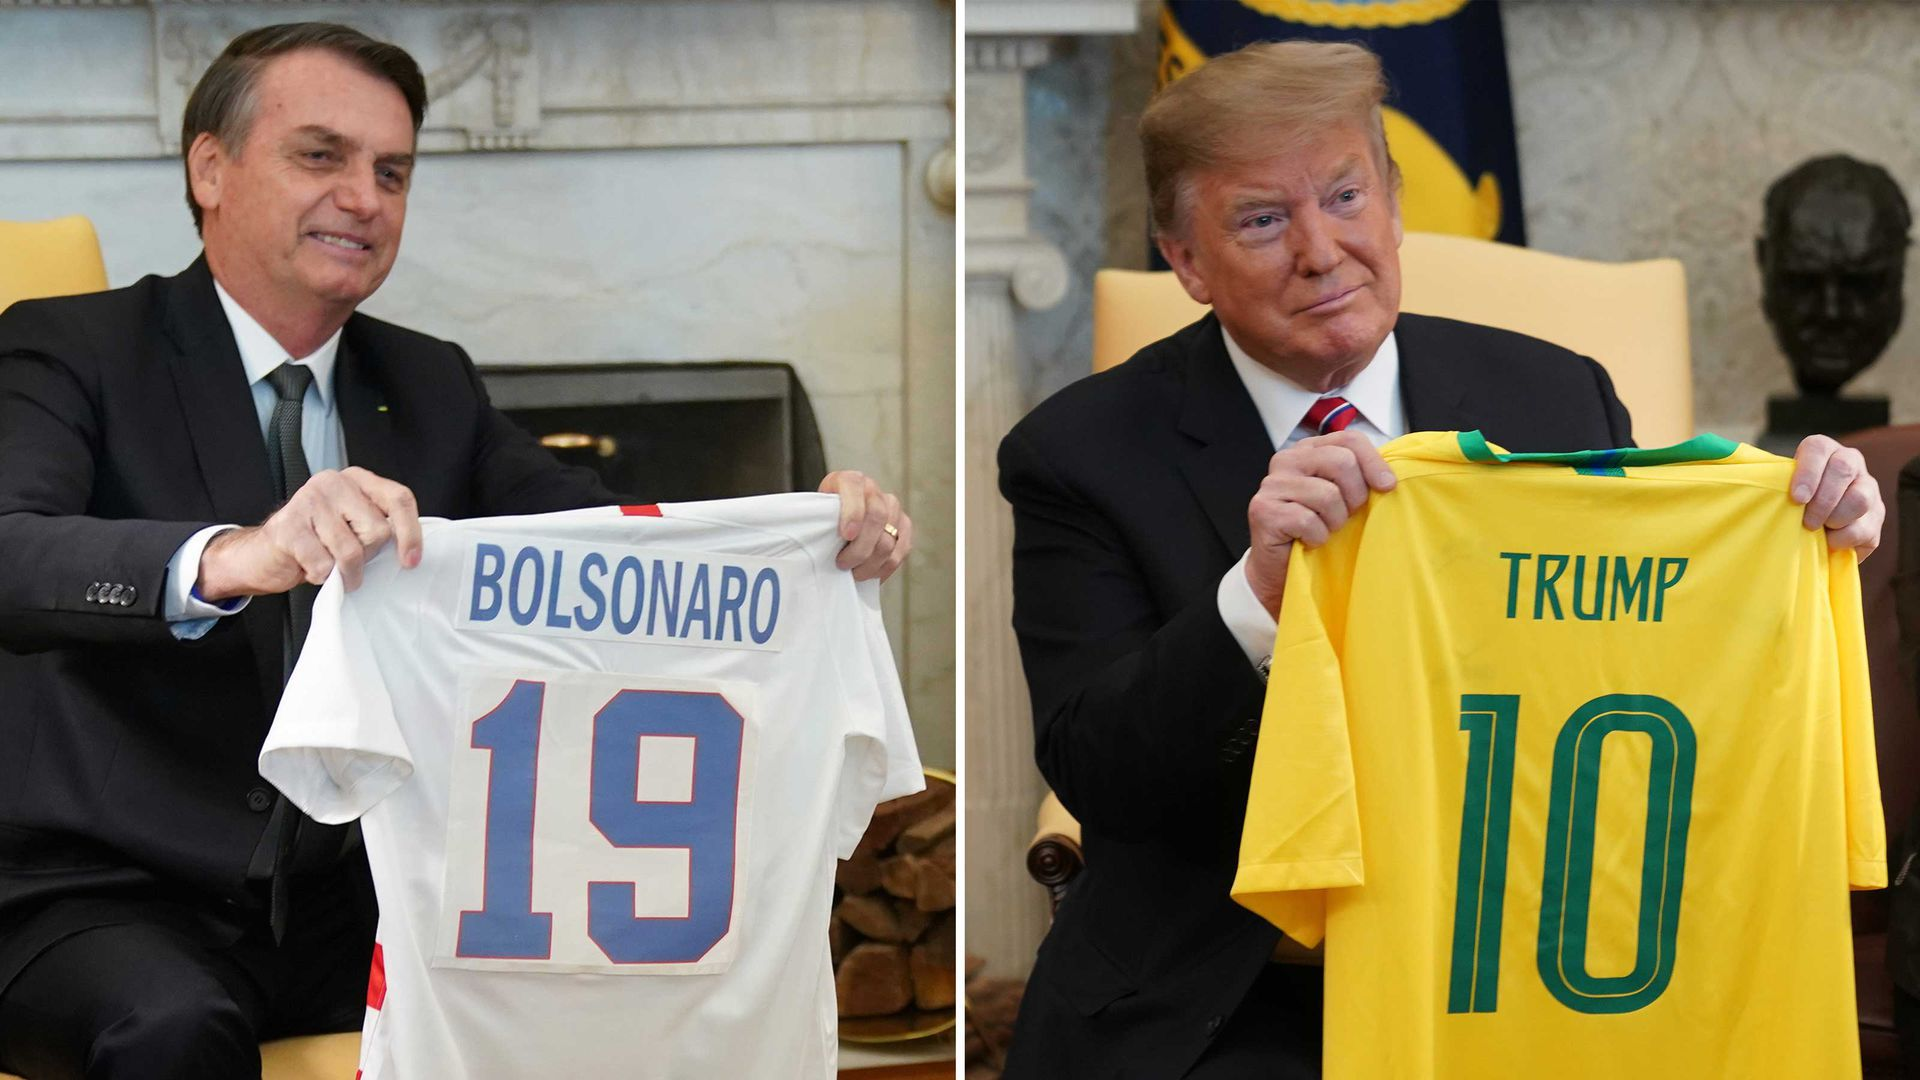 White House officials say there's more to Trump's embrace of Brazil's Jair Bolsonaro